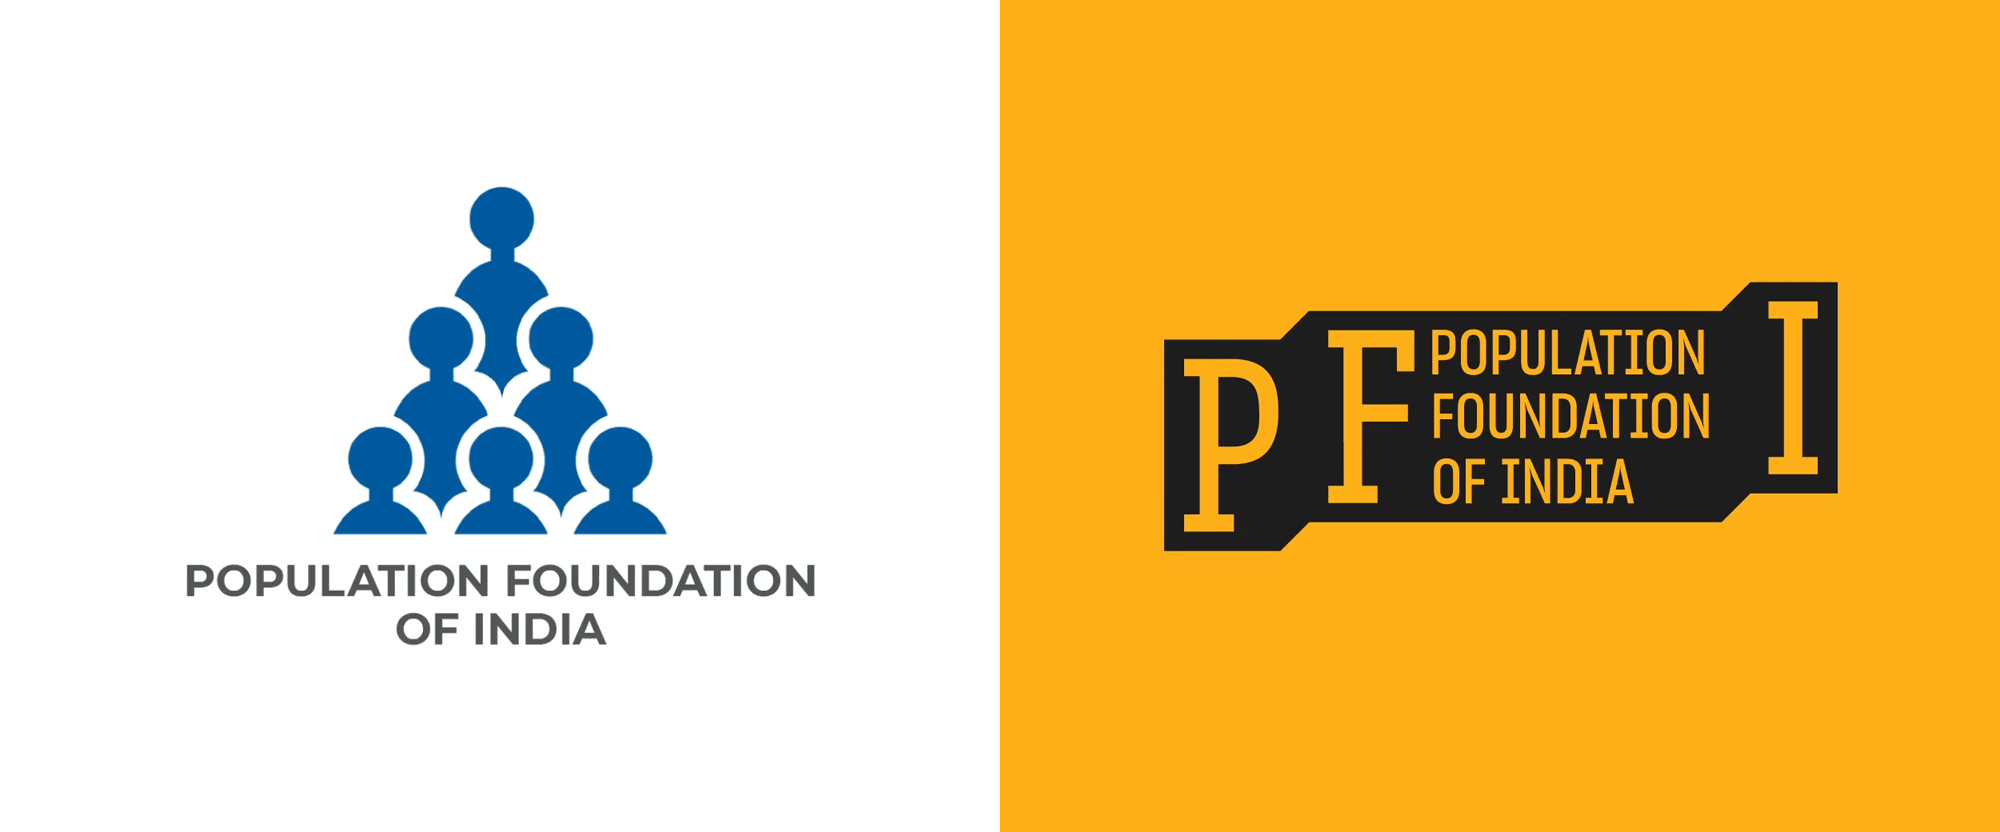 New Logo and Identity for Population Foundation of India by Lopez Design